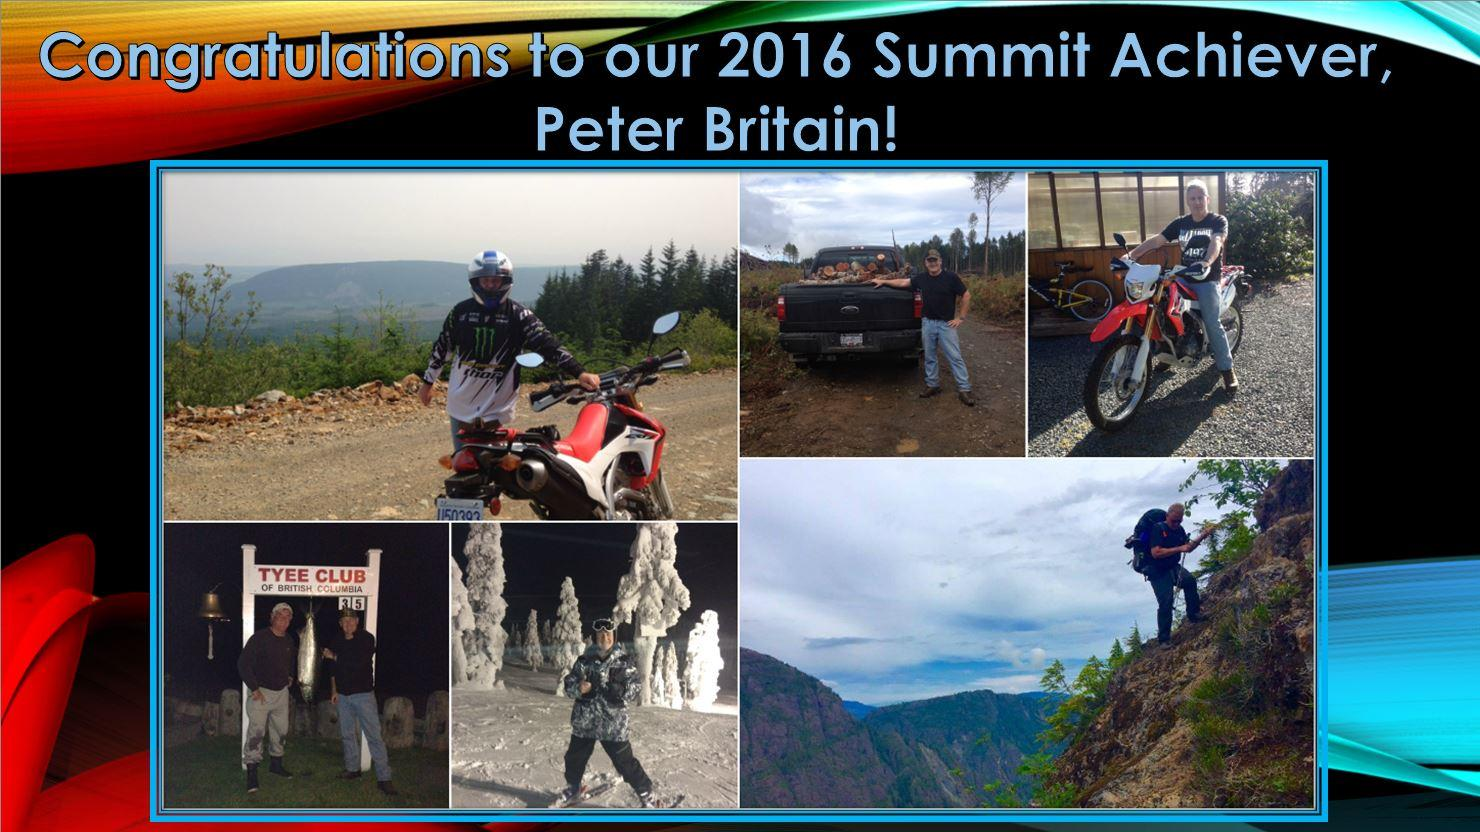 Congratulations to Peter Britain, 2016 Summit Achievers Winner!